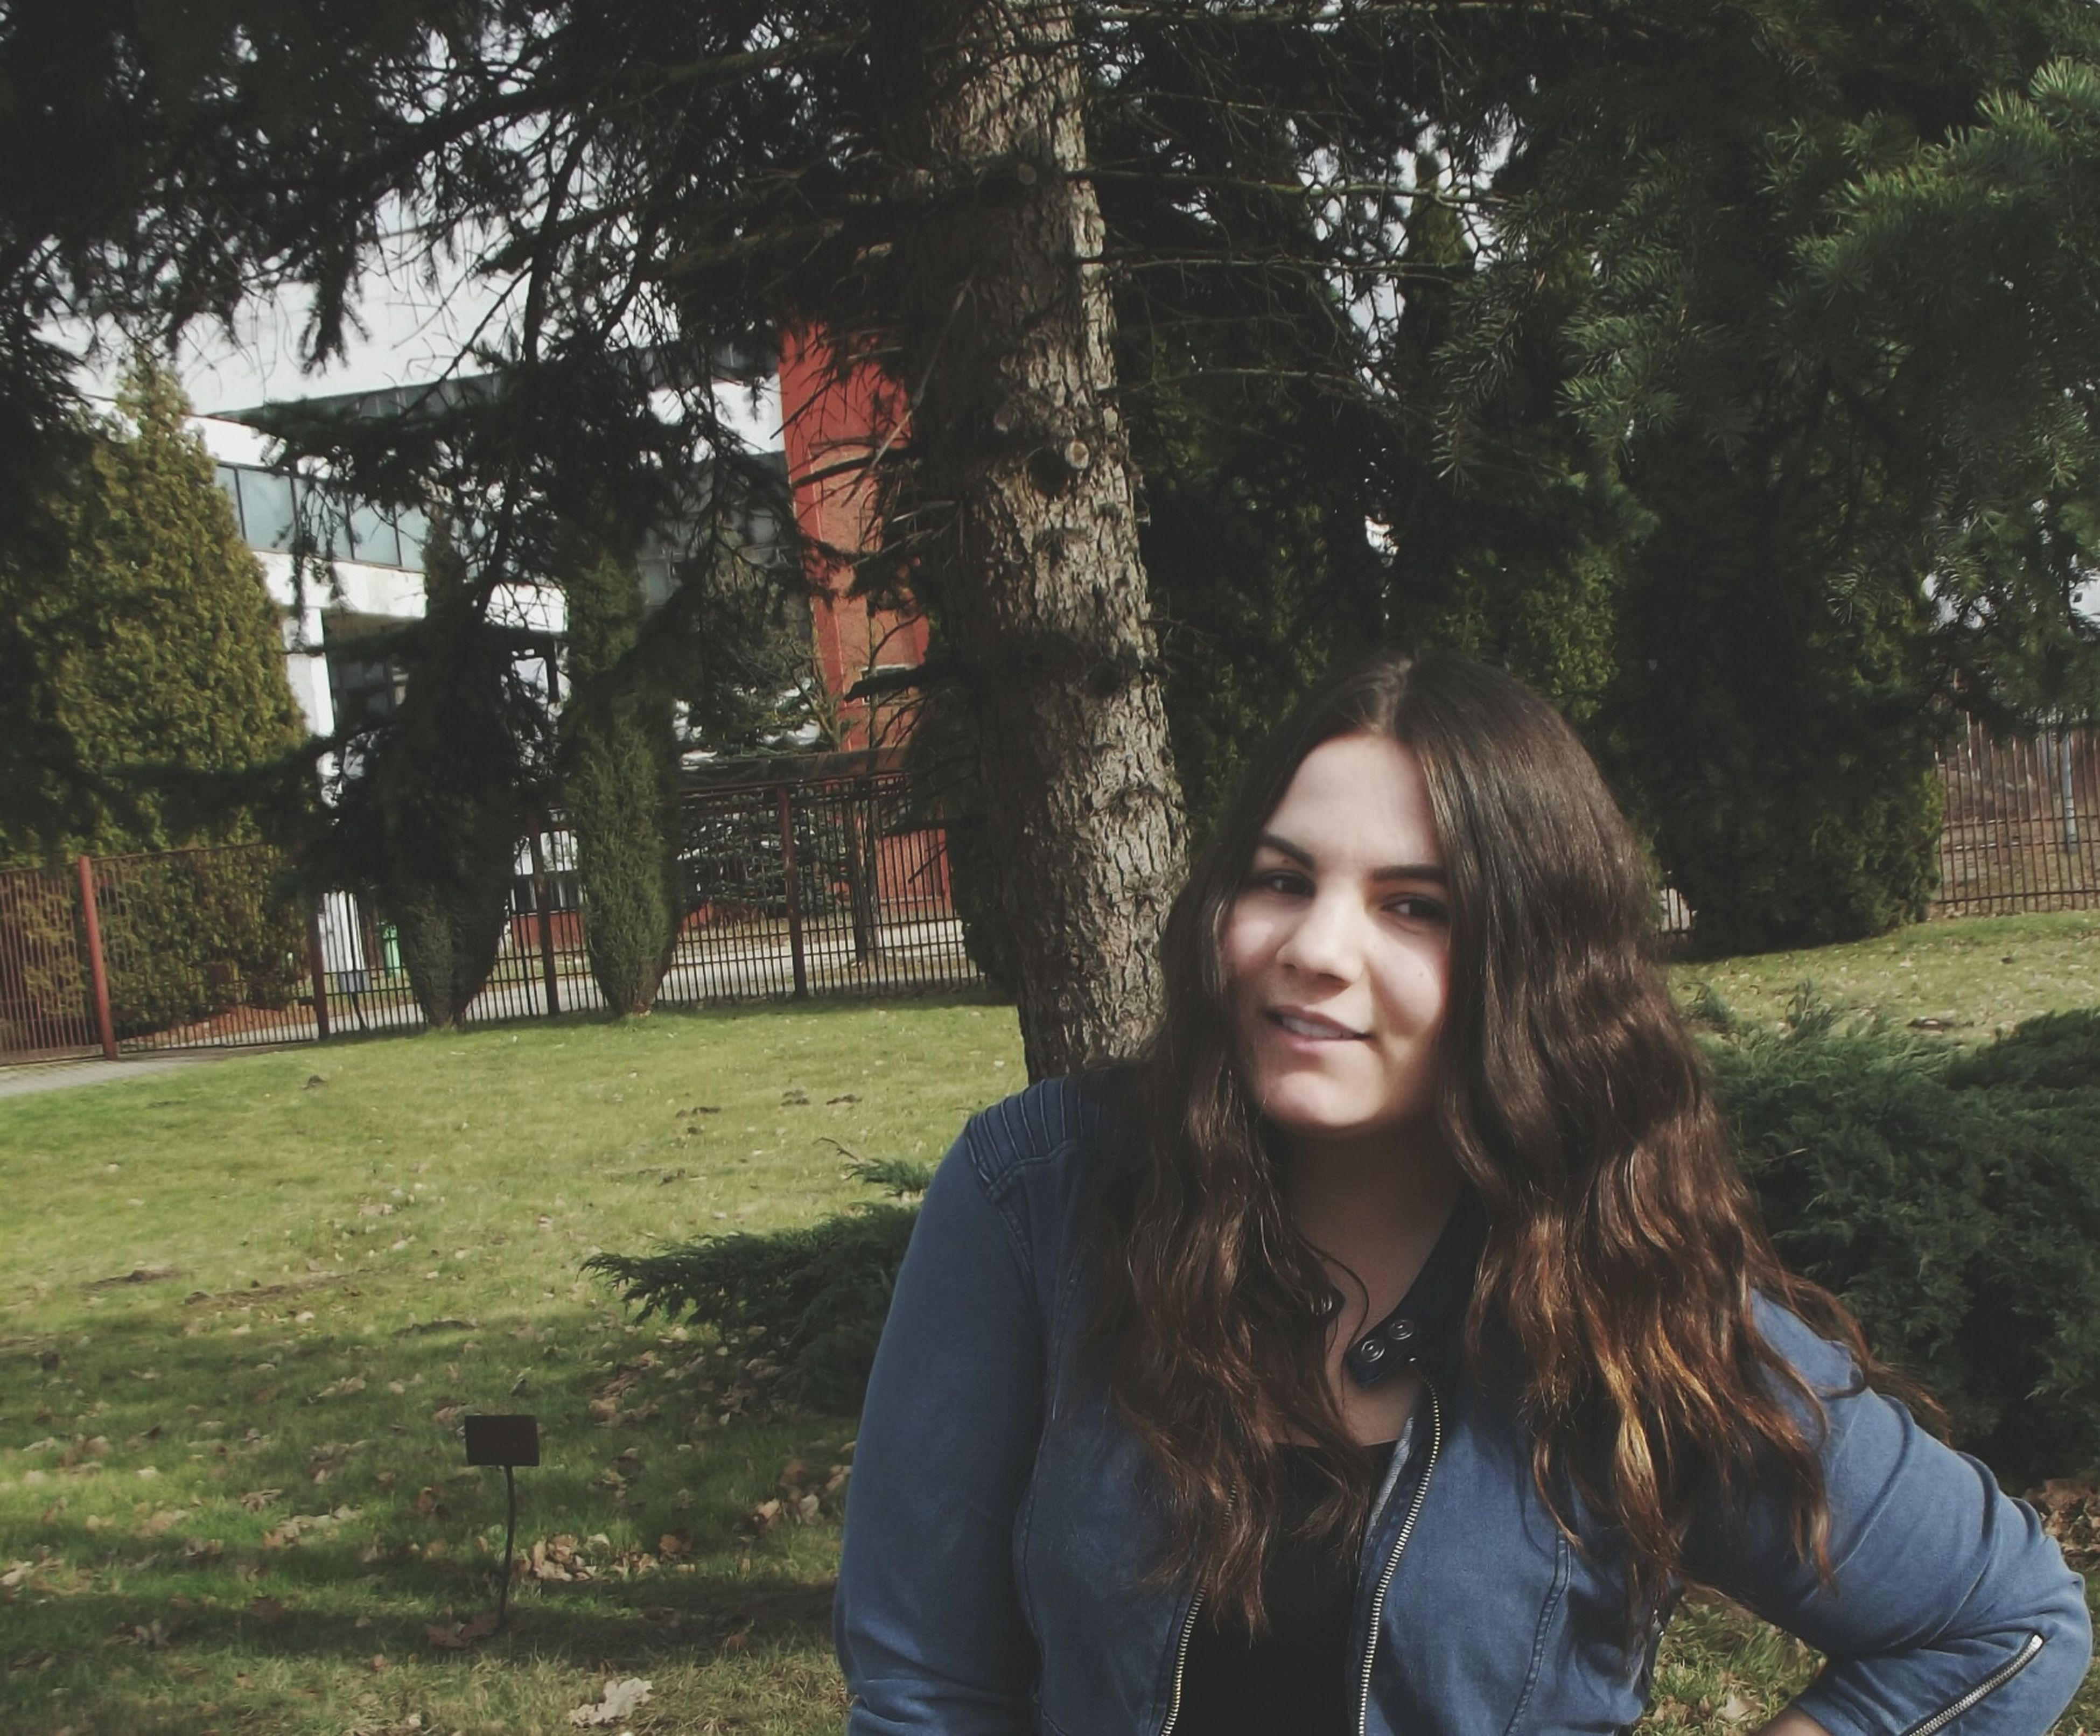 tree, young adult, lifestyles, leisure activity, person, young women, park - man made space, casual clothing, grass, looking at camera, portrait, smiling, front view, sunlight, long hair, park, day, outdoors